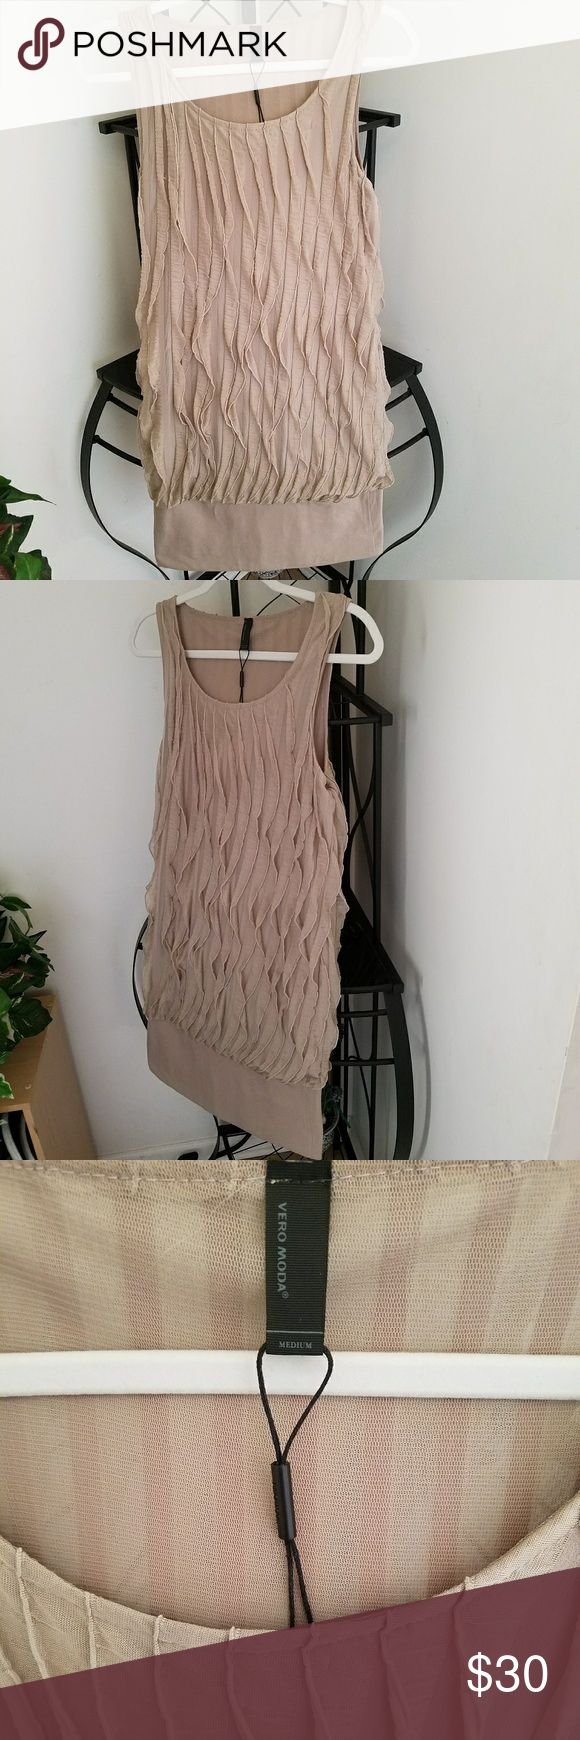 Vero Moda Mini Dress Absolutley fun and adorable Mini Dress. Nice neutral color, cool texture & pattern. Lots of different ways to style and wear this dress! Excellent quality and condition. Approximate measurements and fabric content in listing. Vero Moda Dresses Mini